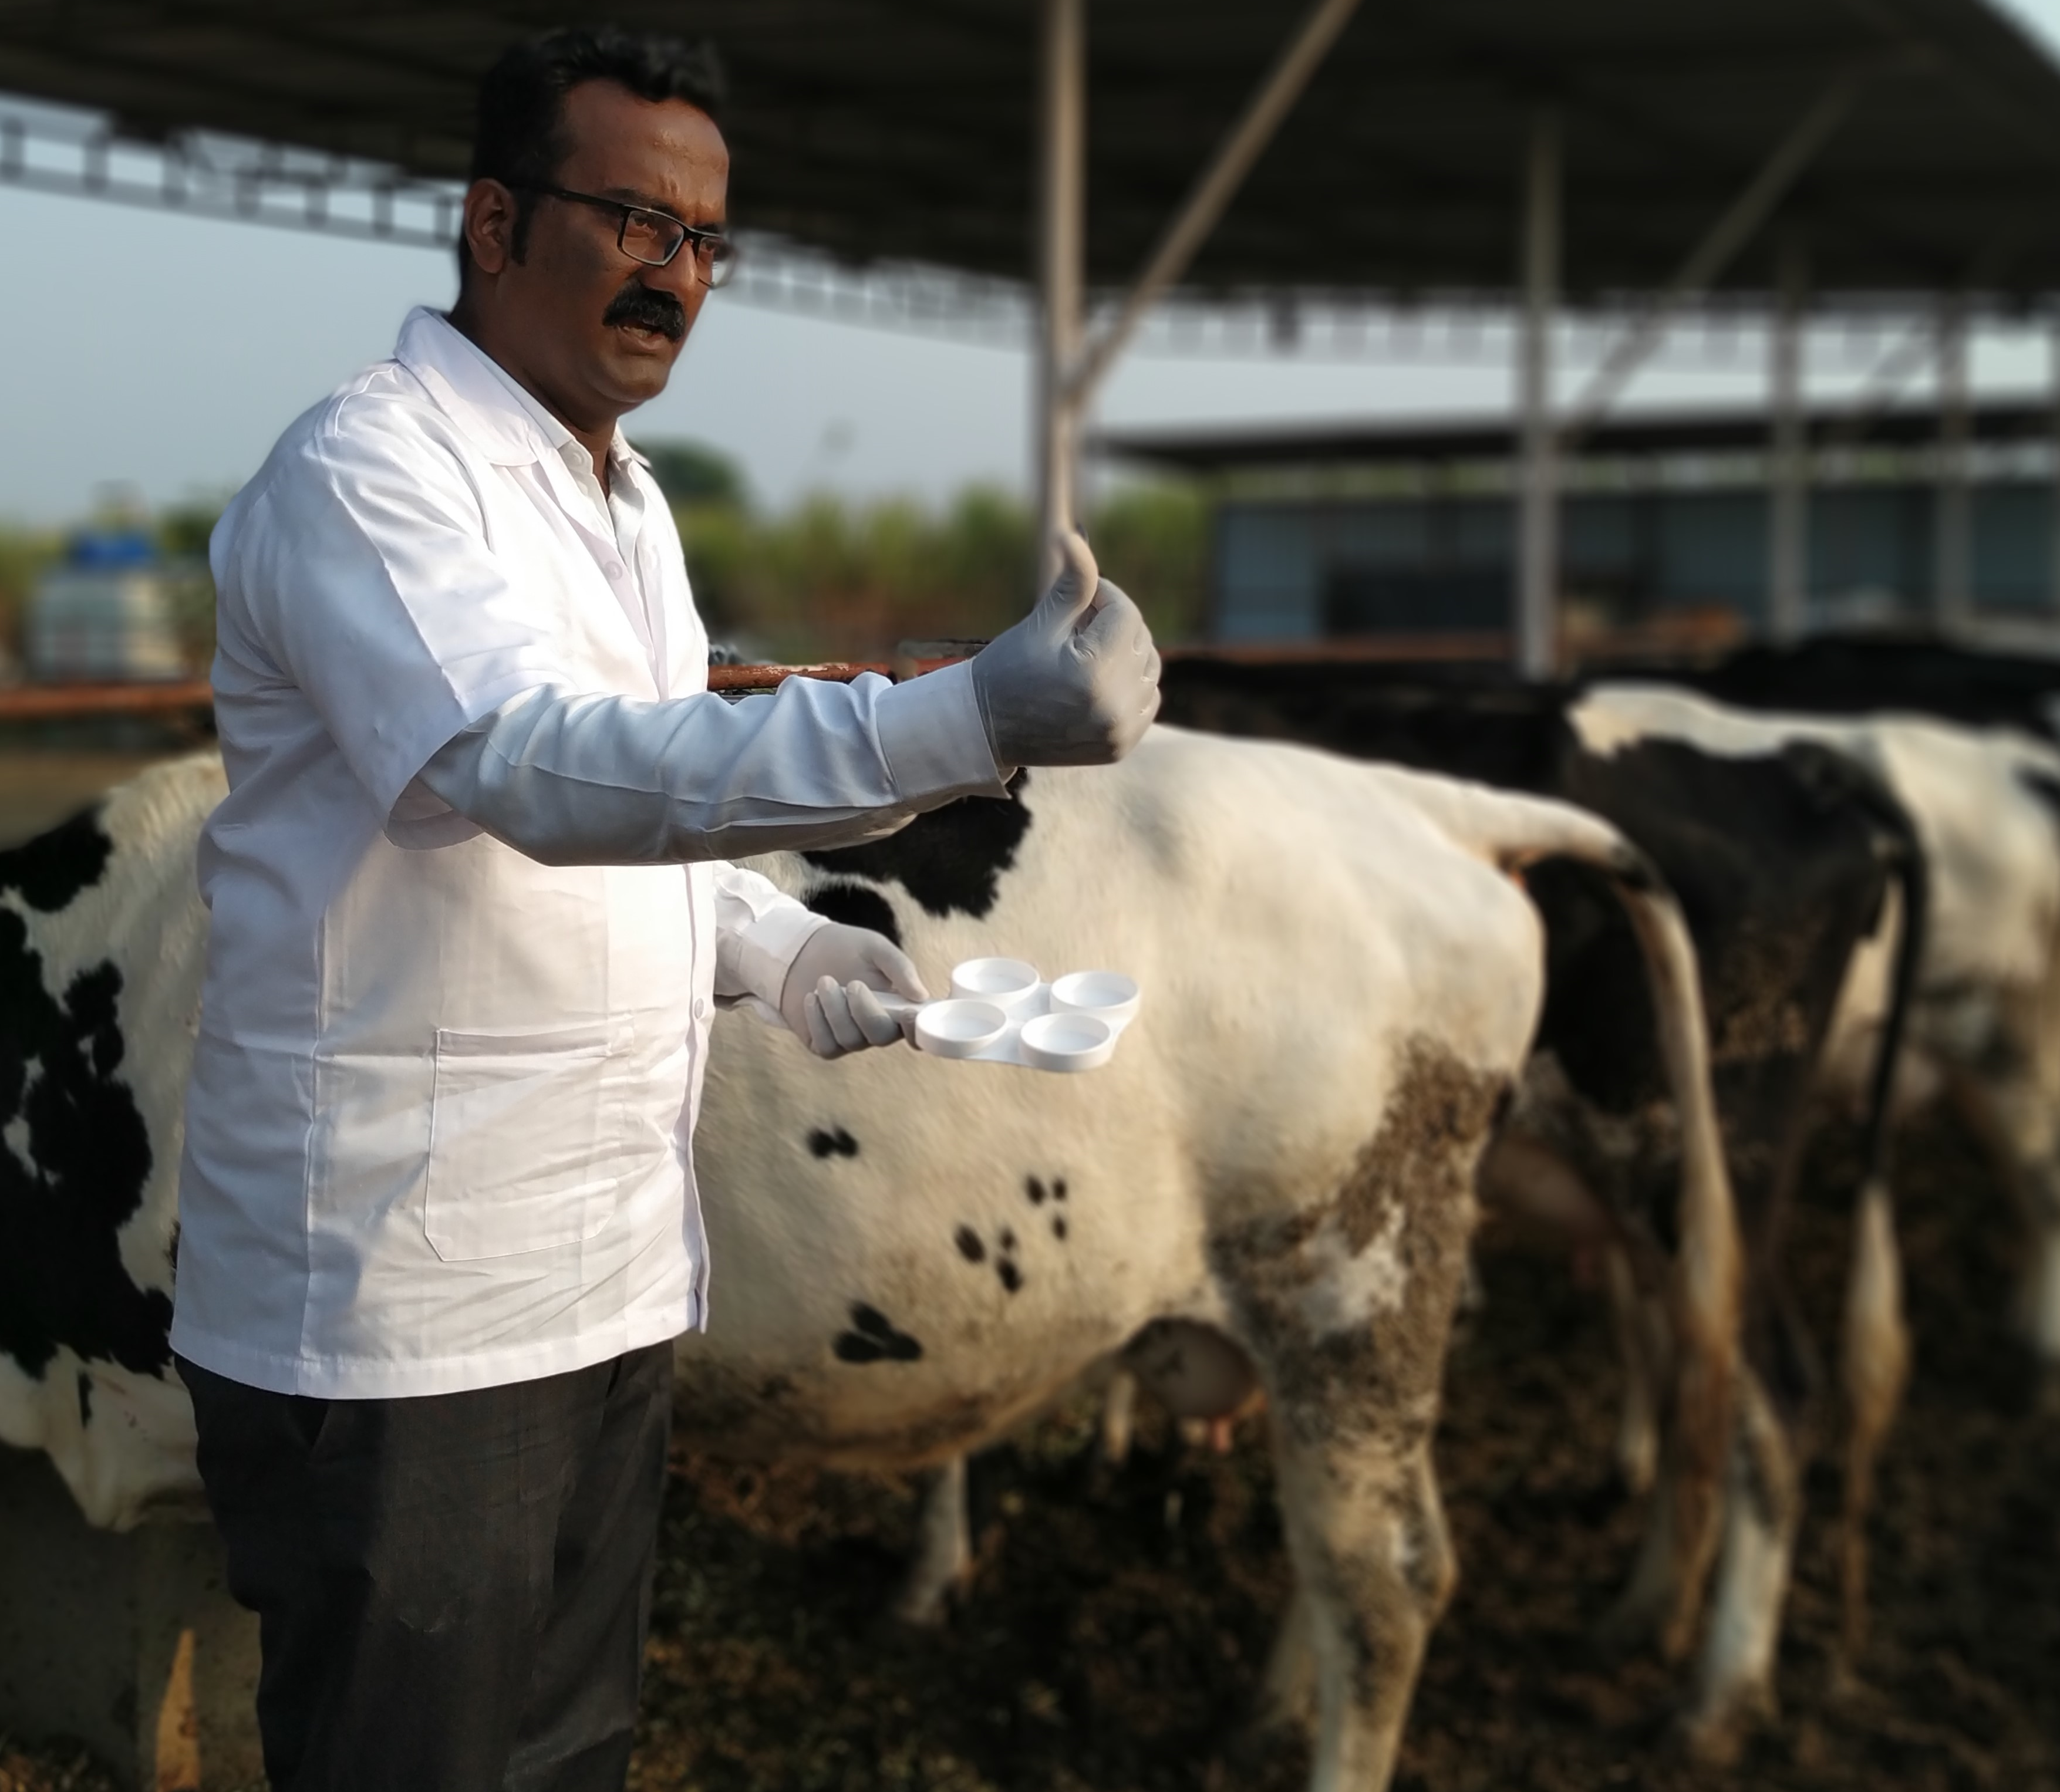 Hire experts in dairy farming